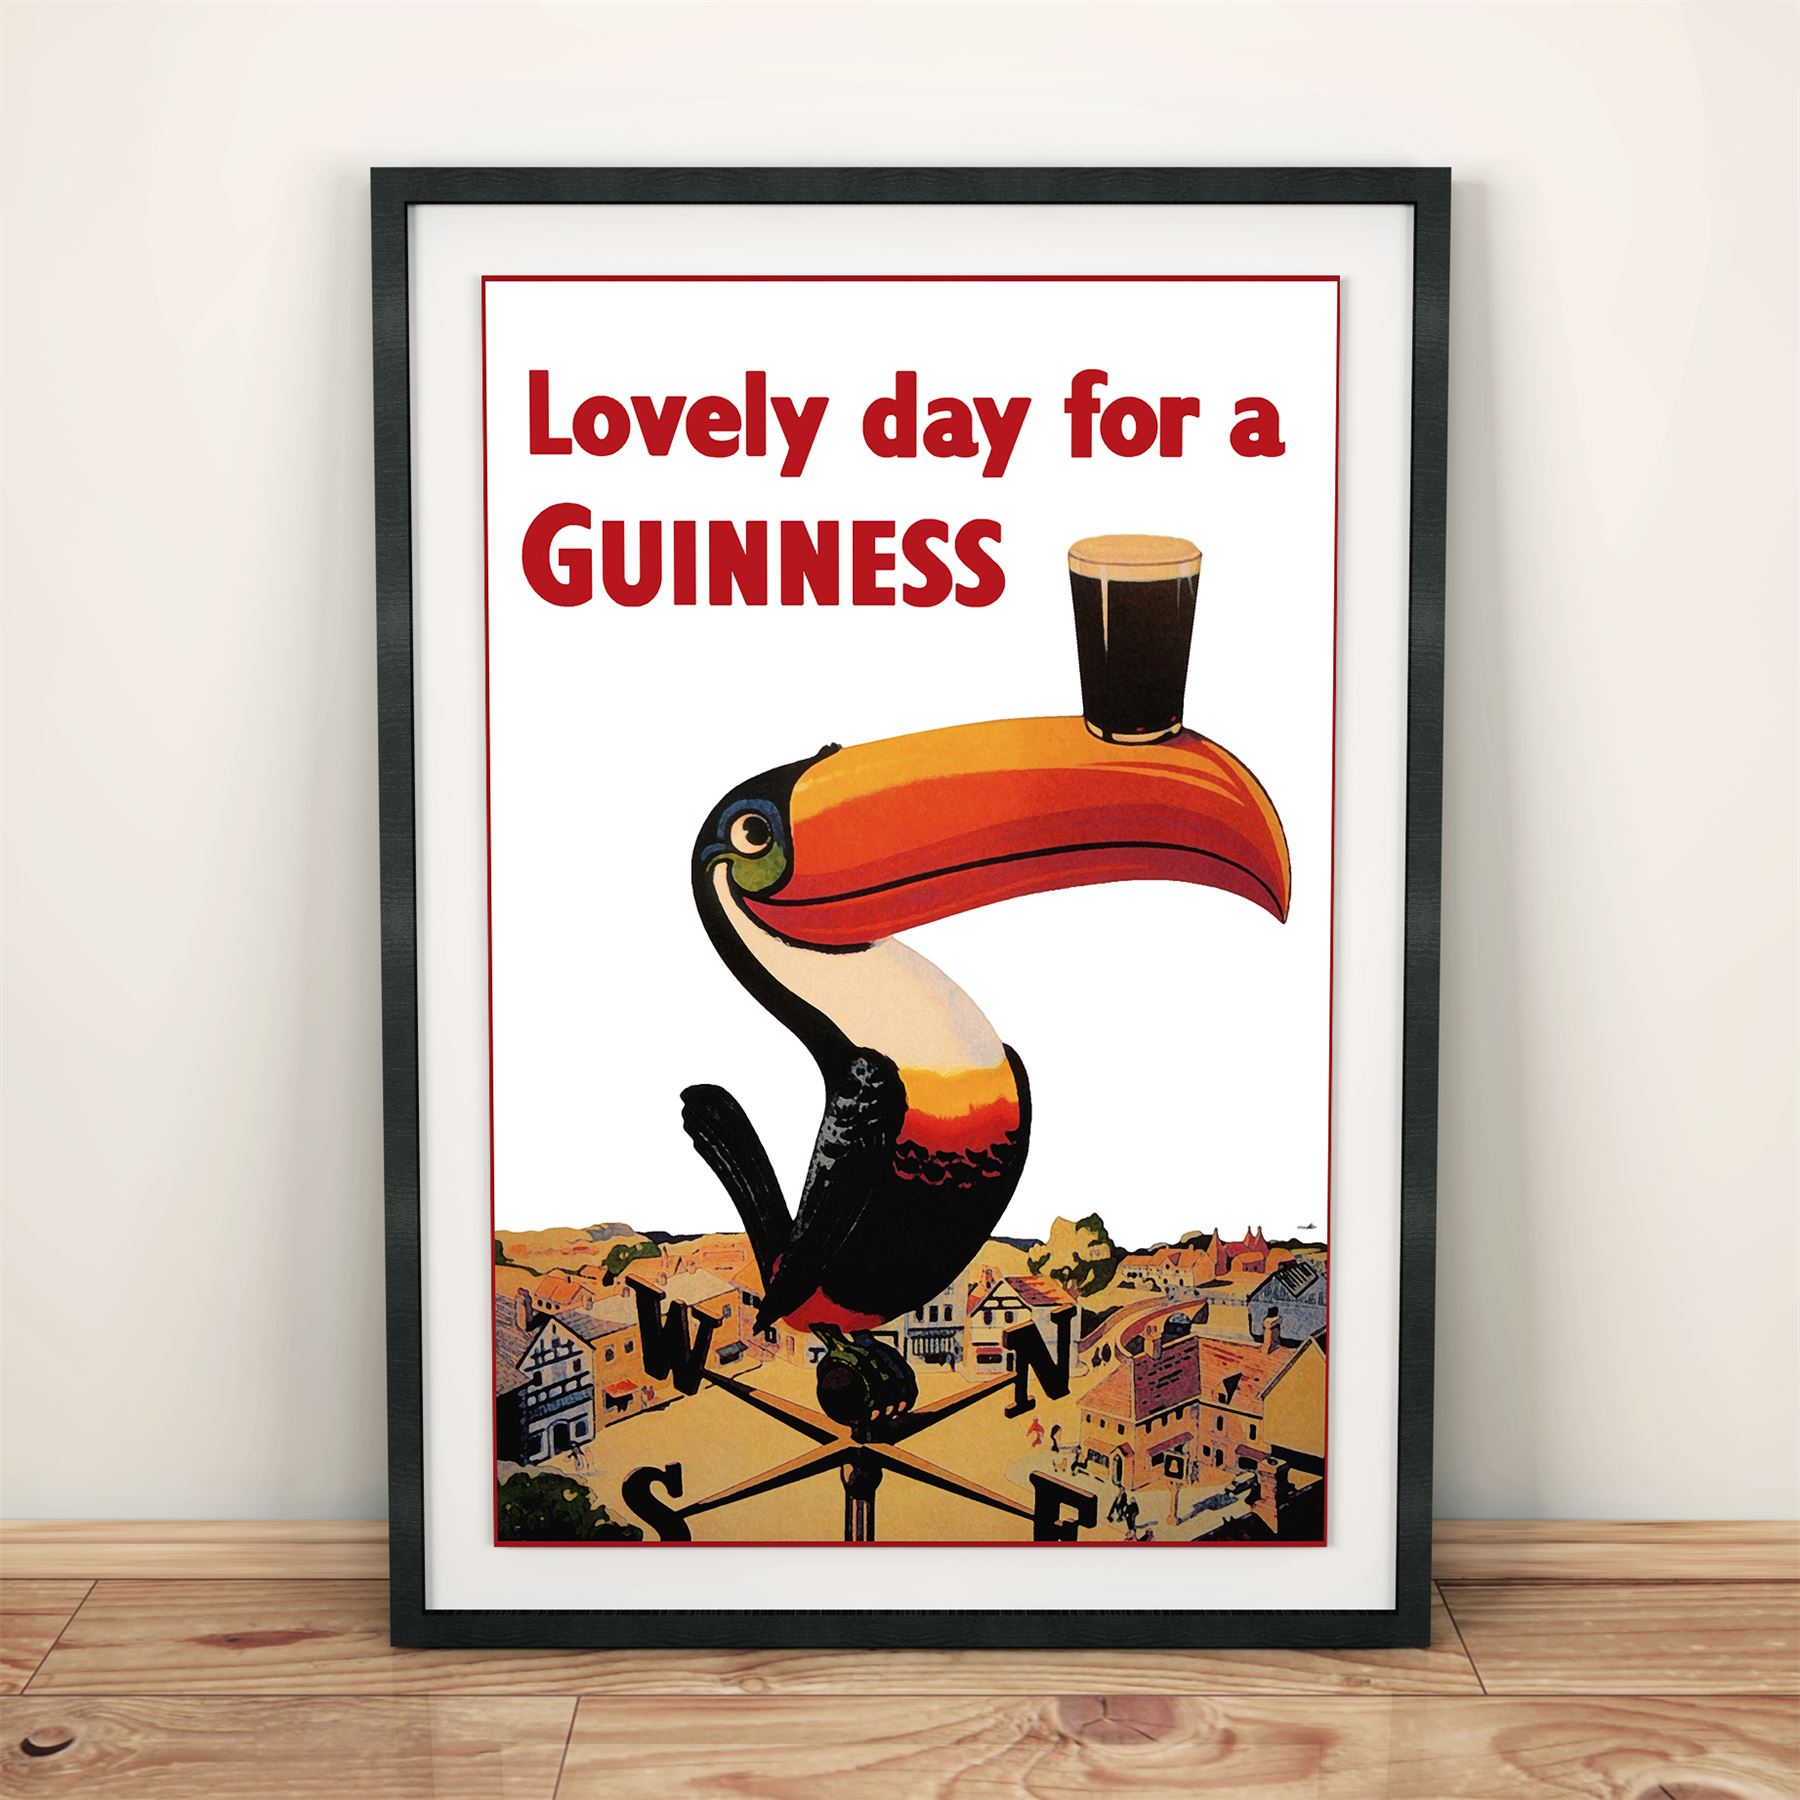 Details about Lovely Day for a Guinness - Beer/Drinks Advertising Vintage  Poster